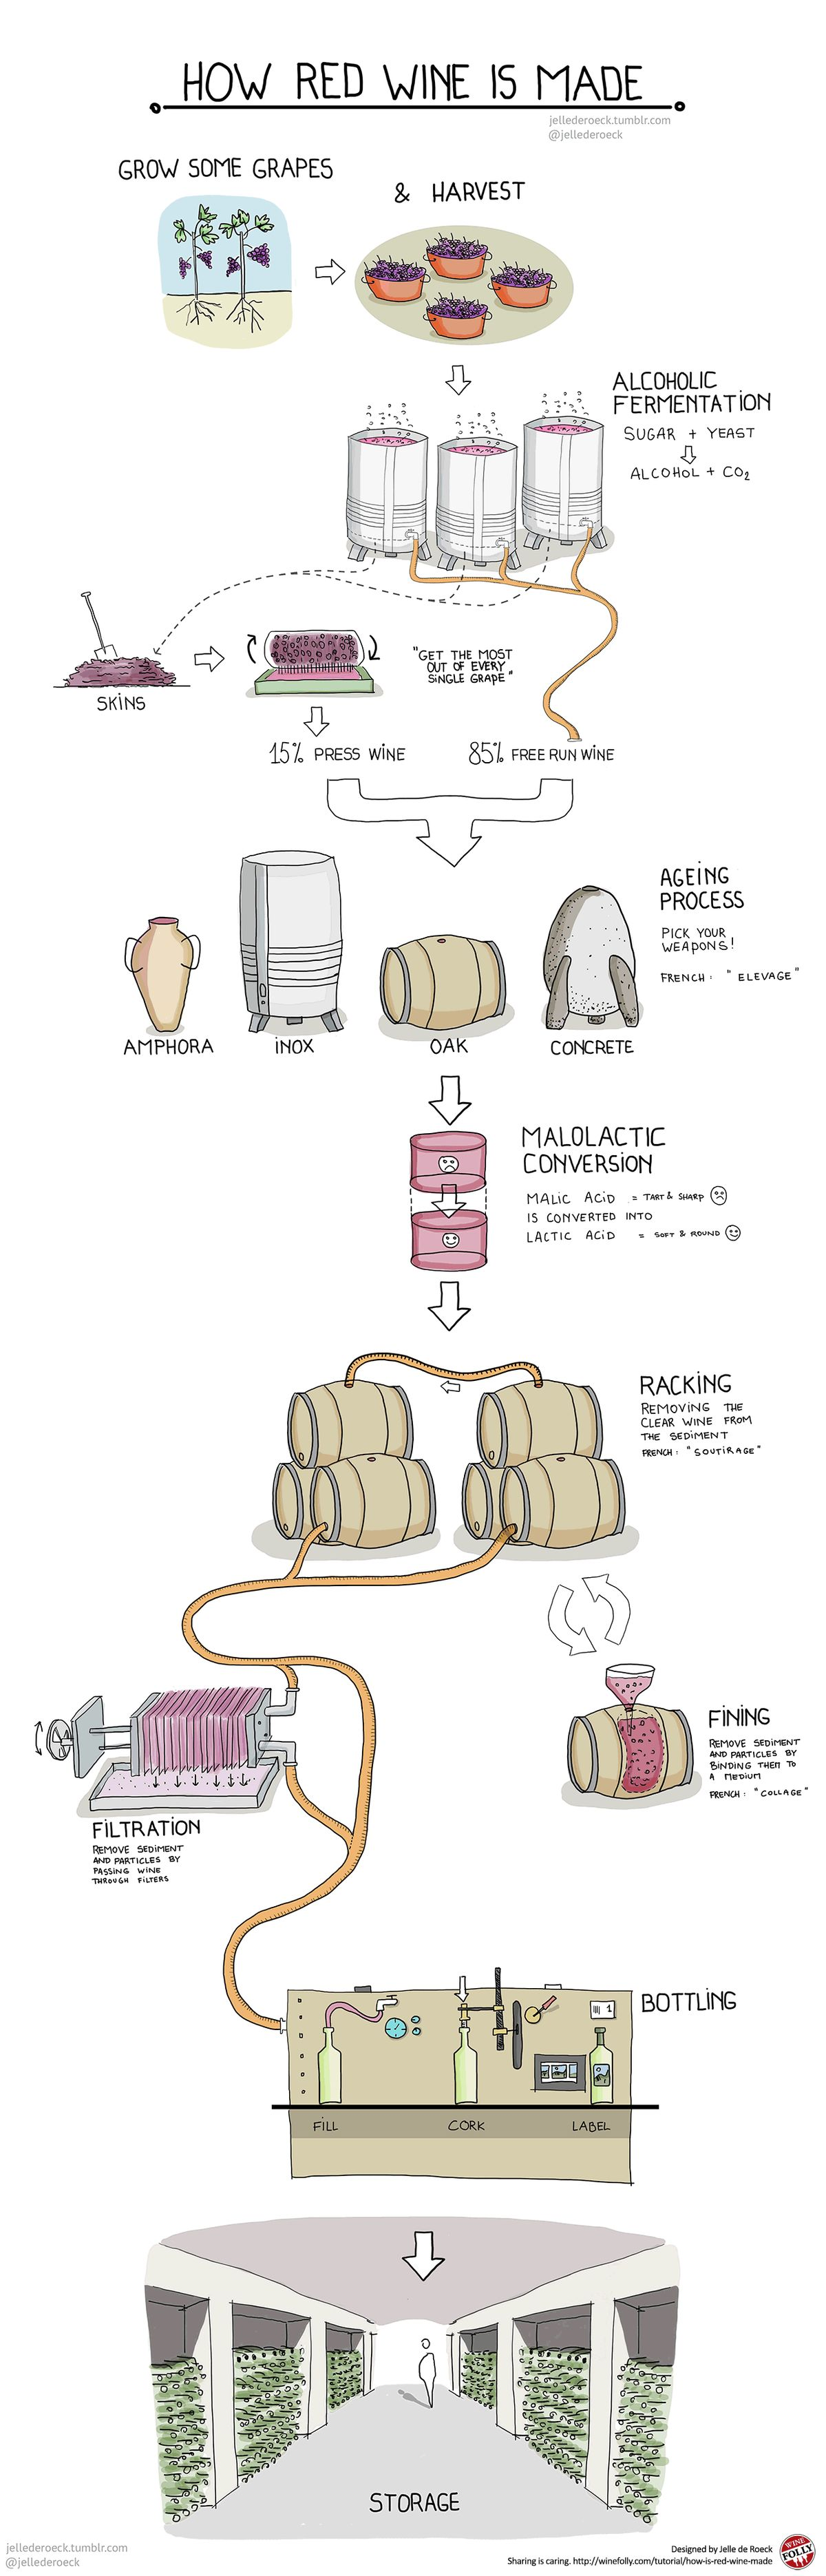 How Red Wine Is Made